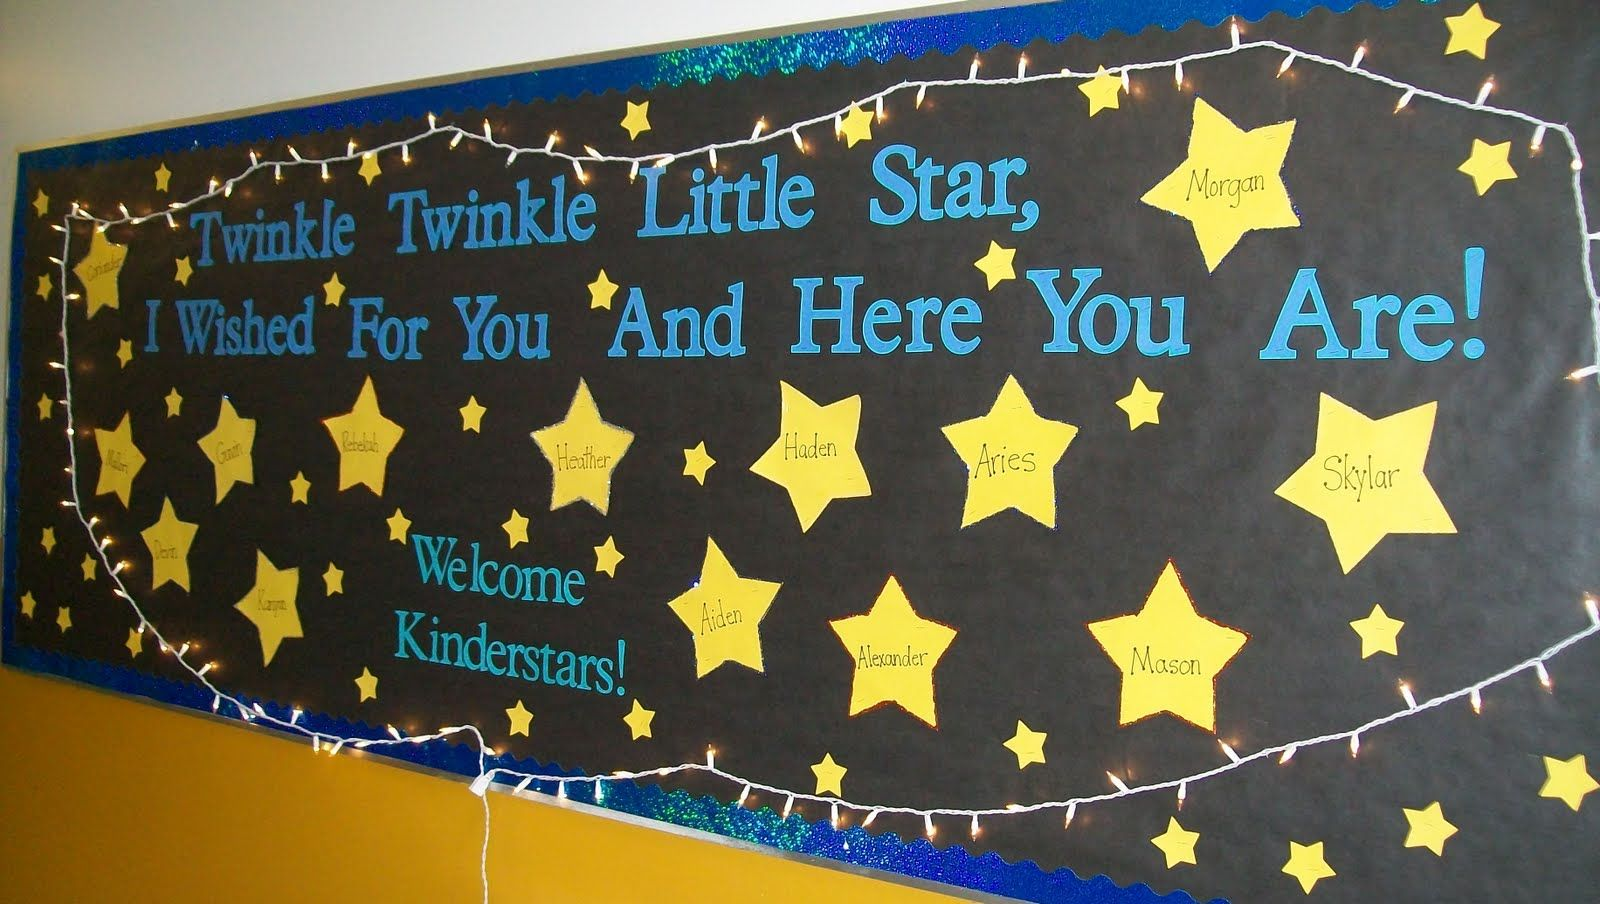 Twinkle Twinkle Little Star I Wished For You And Here